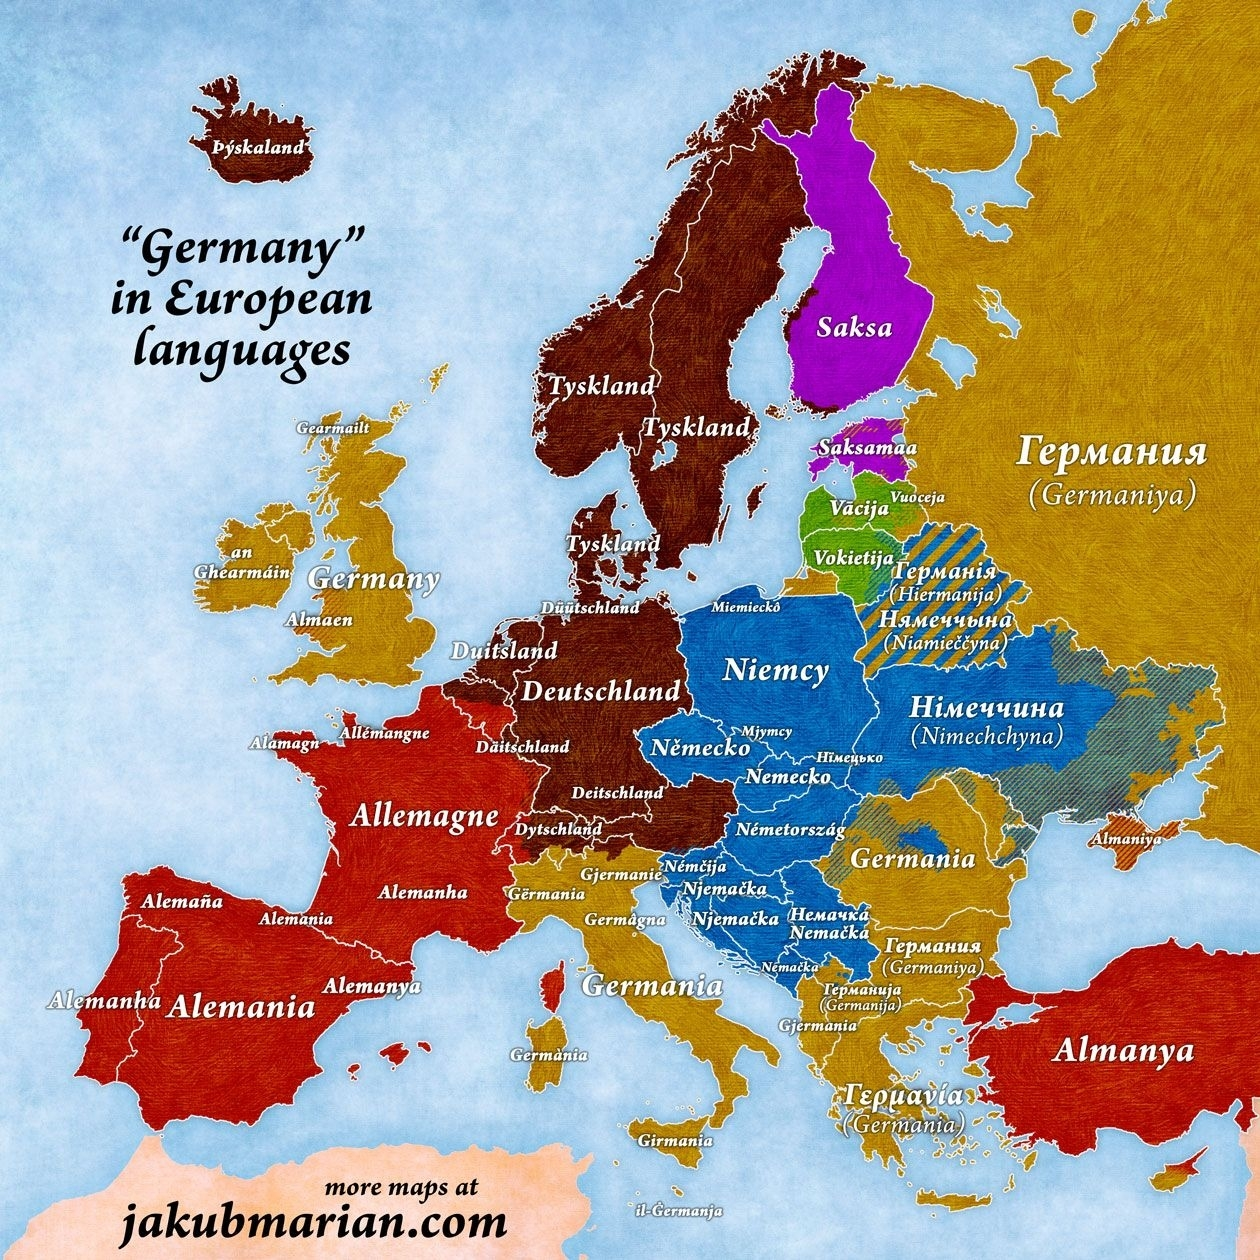 Names Of Germany In European Languages | Maps | European Languages inside German Language Map Of Europe